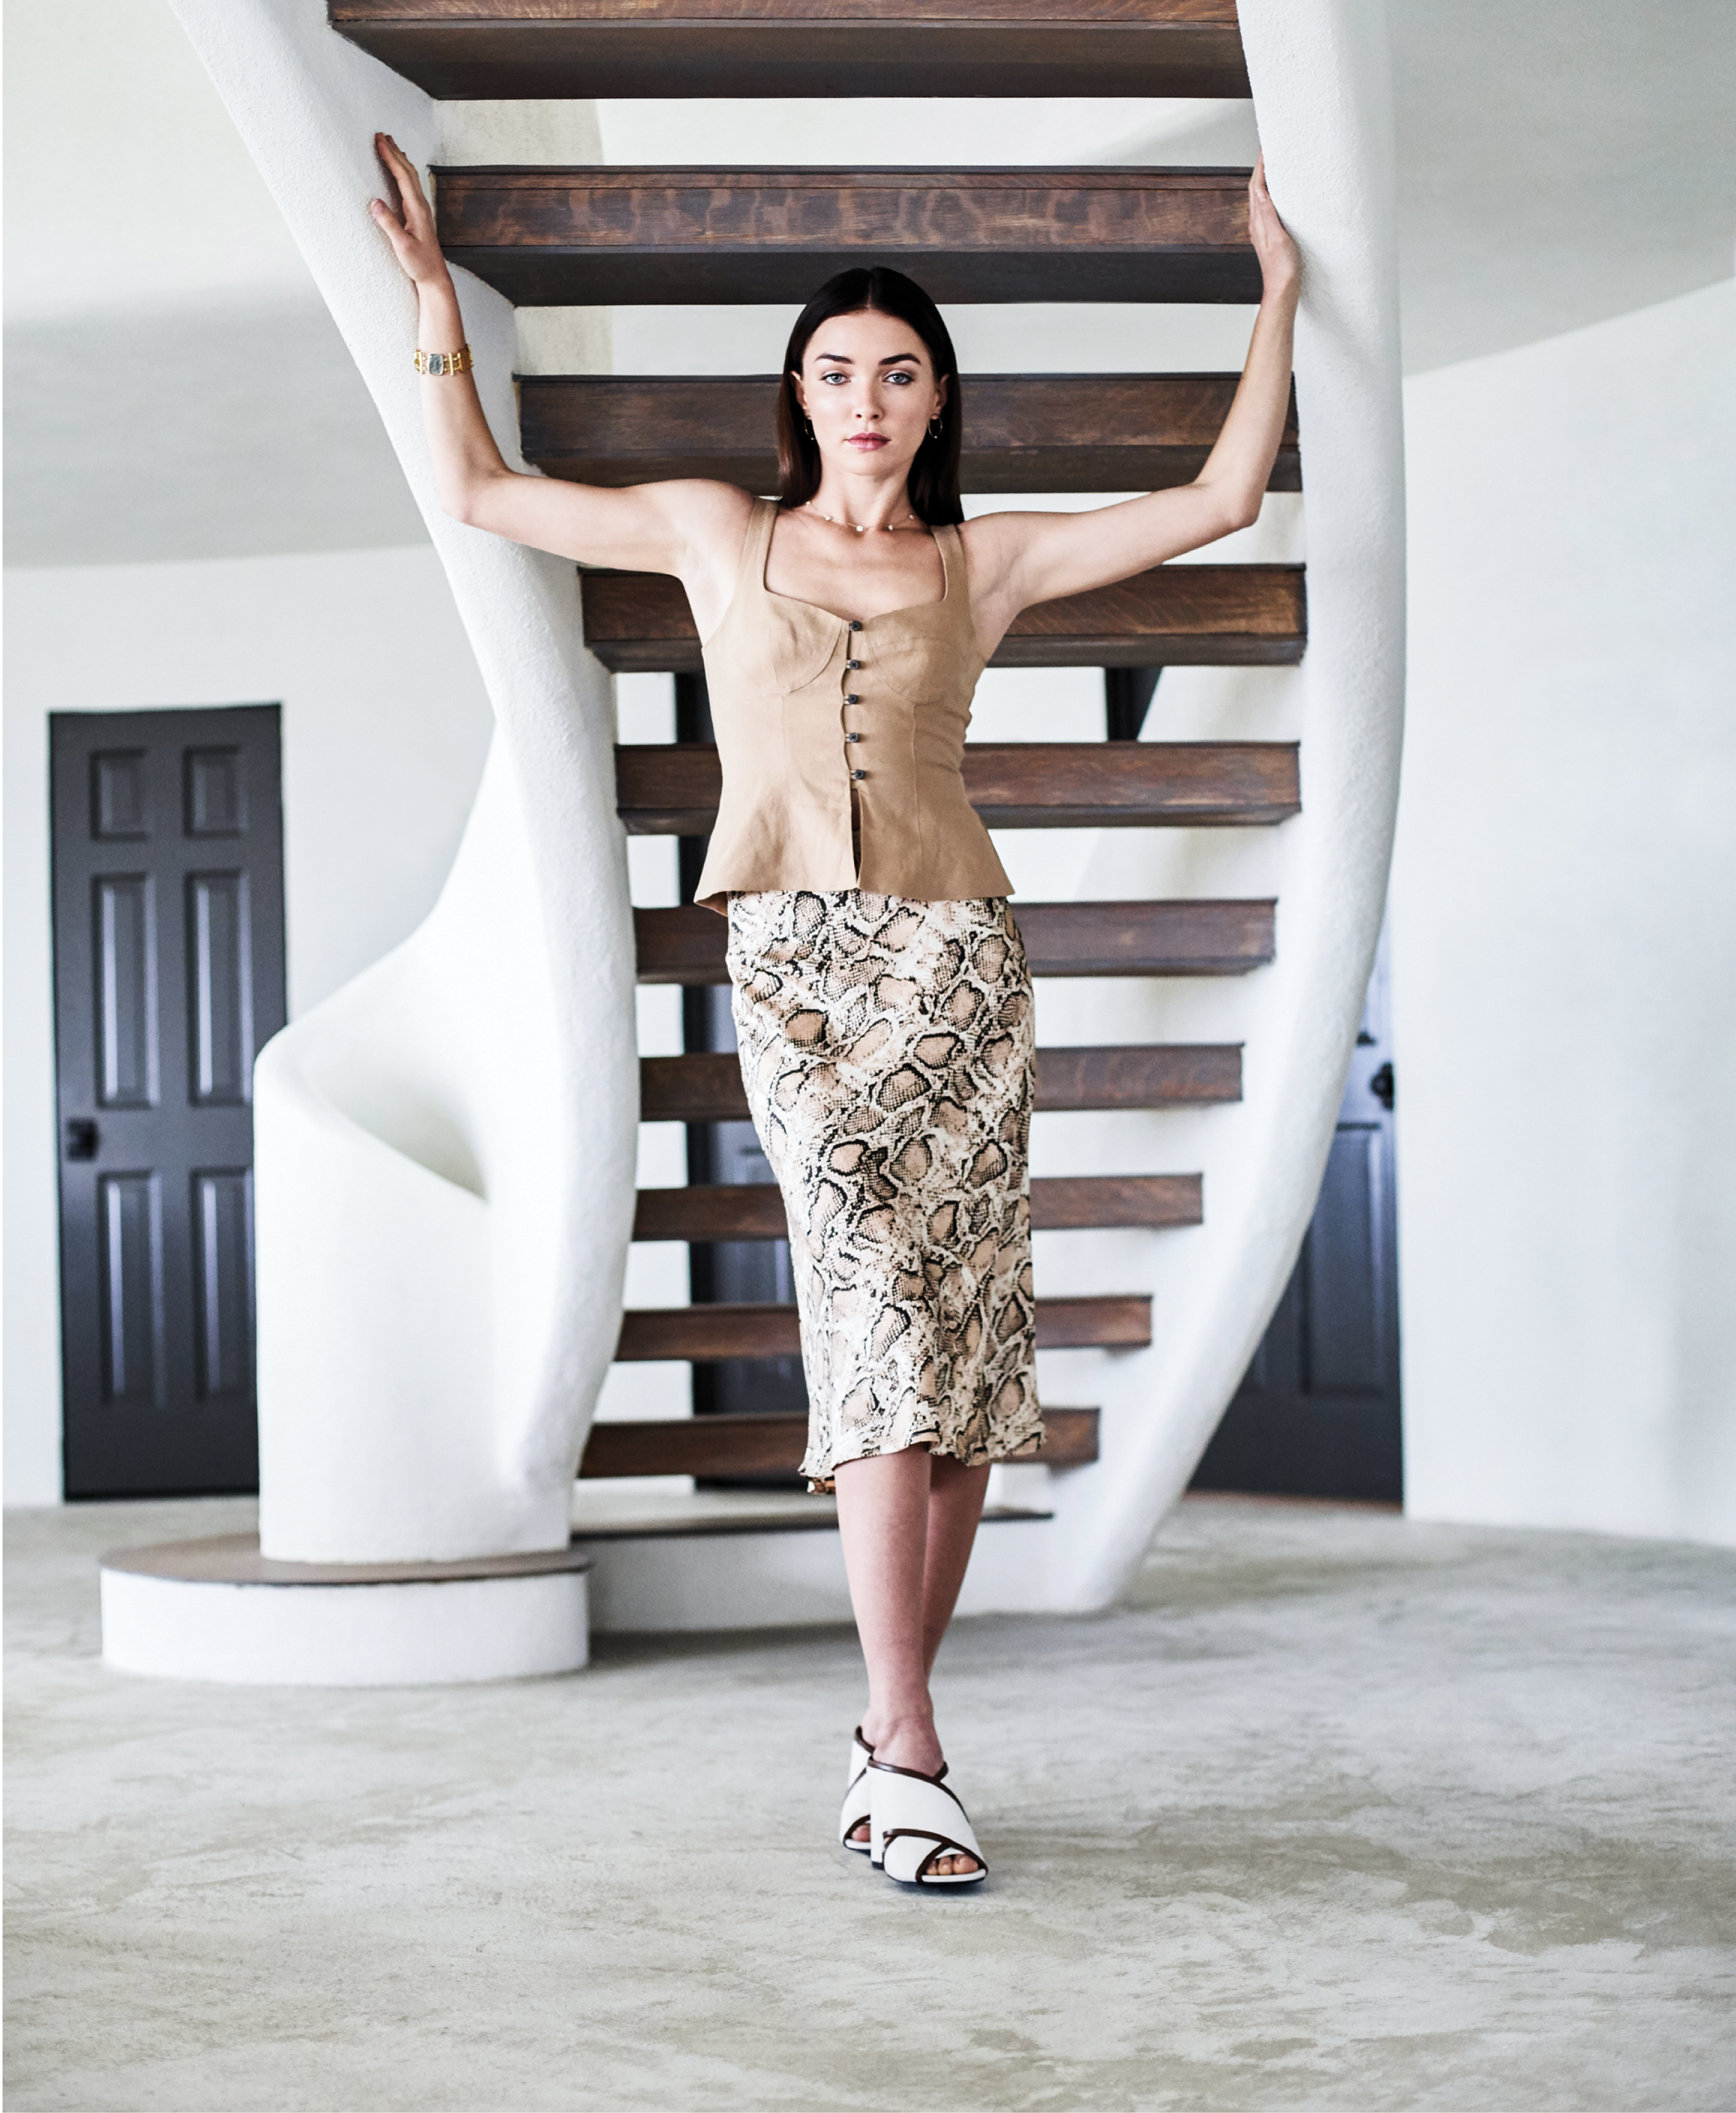 """NATURAL SELECTION - Mara Hoffman """"Lola"""" top in """"khaki,"""" $325 at Hampden Clothing; Olivaceous """"Kiki"""" snakeskin-print midi skirt, $42 at House of Sage; Stuart Weitzman """"Sam 75"""" crisscross leather slides, $475 at Gwynn's of Mount Pleasant; Elizabeth Locke 19Khammered gold and Venetian glass """"Muse"""" bracelet,$11,950, and 14K gold and diamond earrings, $595, bothat Croghan's Jewel Box; custom 14K goldand diamond necklace with diamond flower clusters, price upon request at Diamonds Direct"""